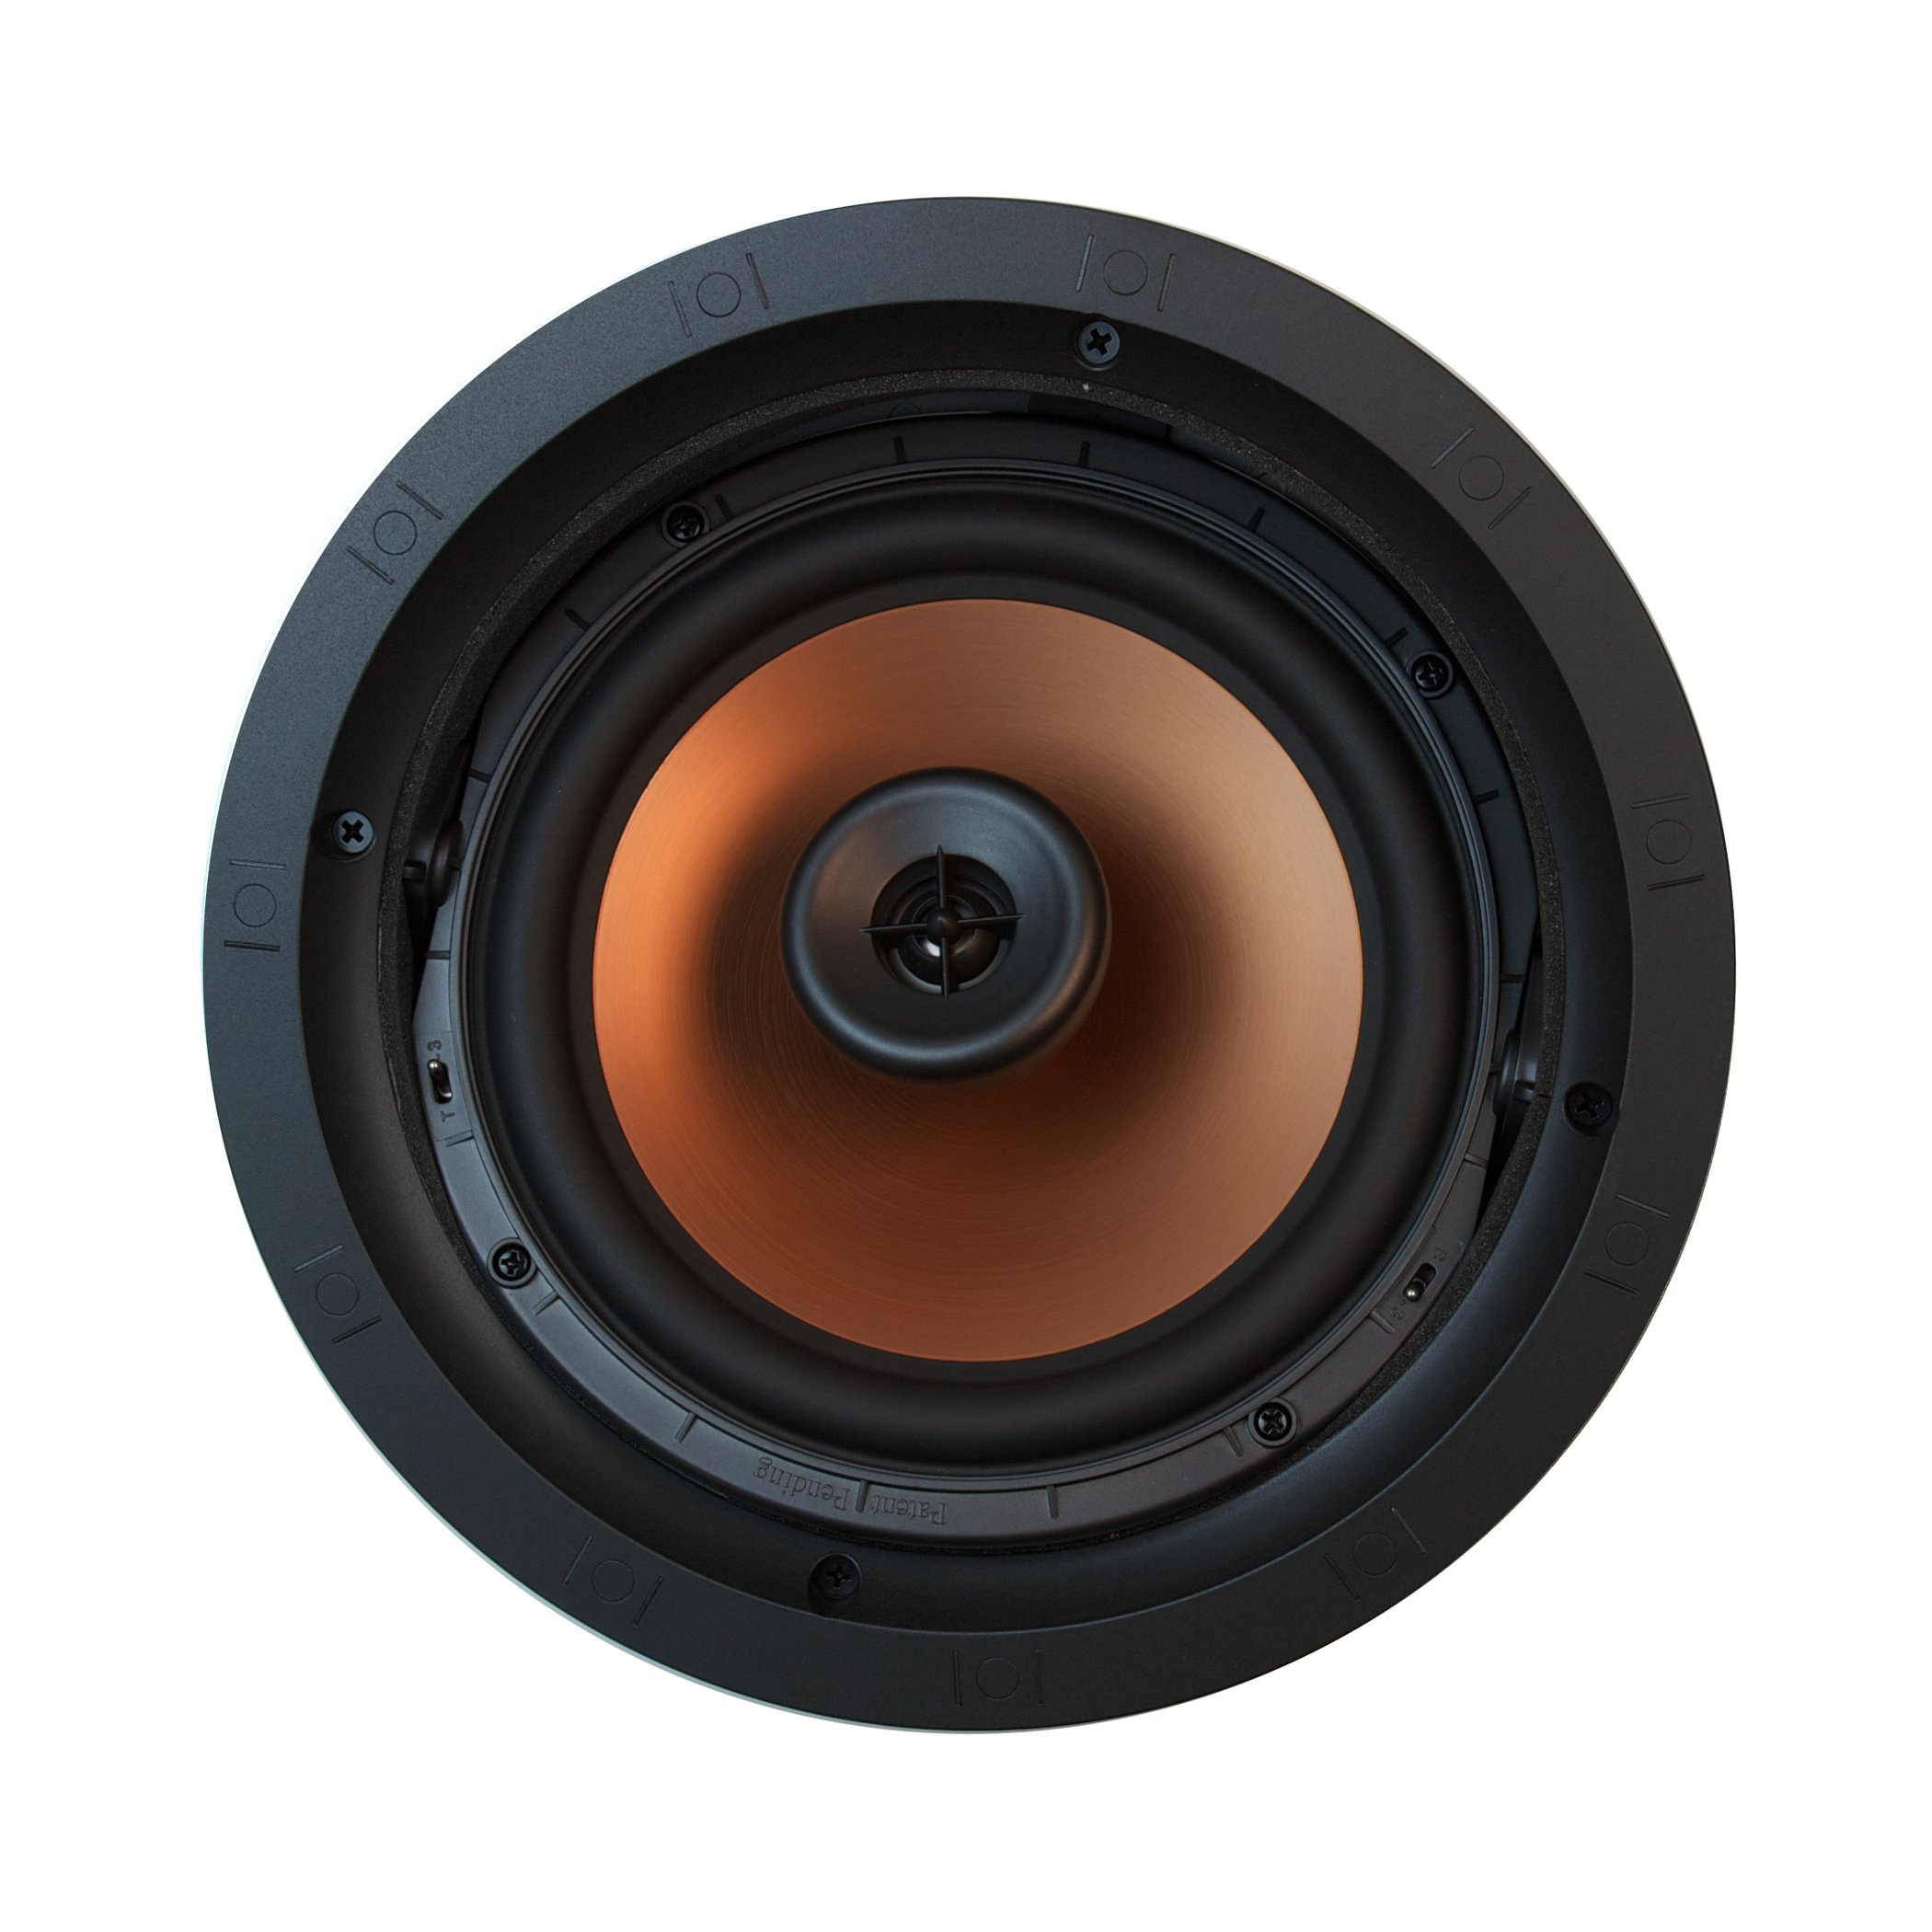 Klipsch CDT-5800-C II In-Ceiling Speaker - White (Each) by Klipsch